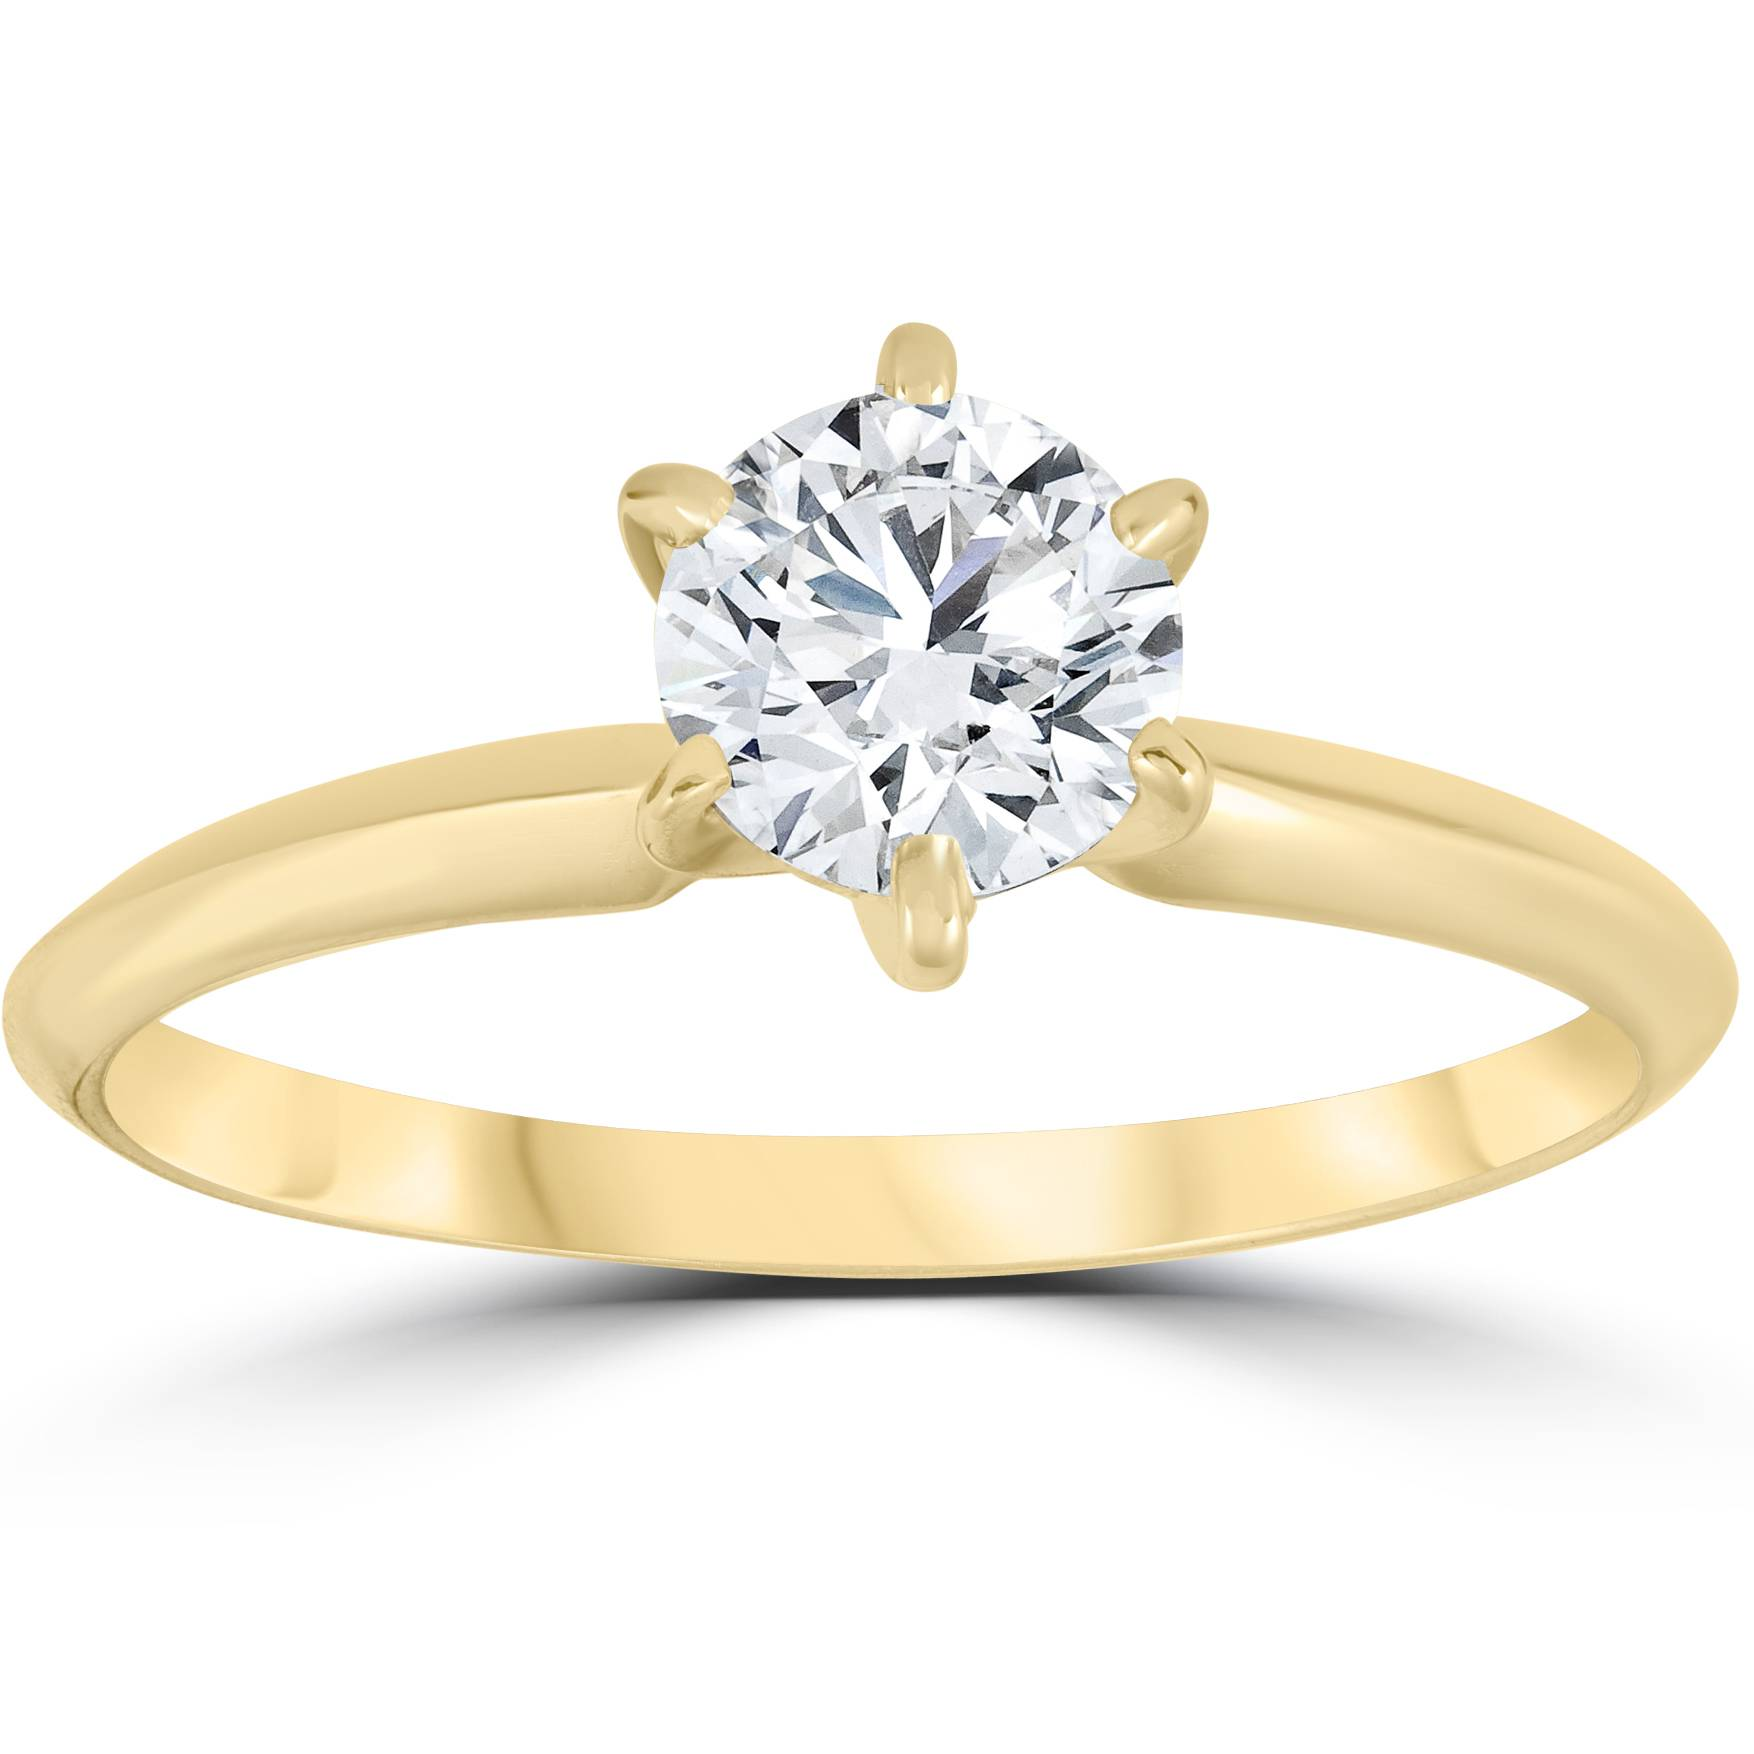 14k Yellow Gold 3 4ct Round Solitaire Diamond Engagement Ring Jewelry Brilliant by Pompeii3